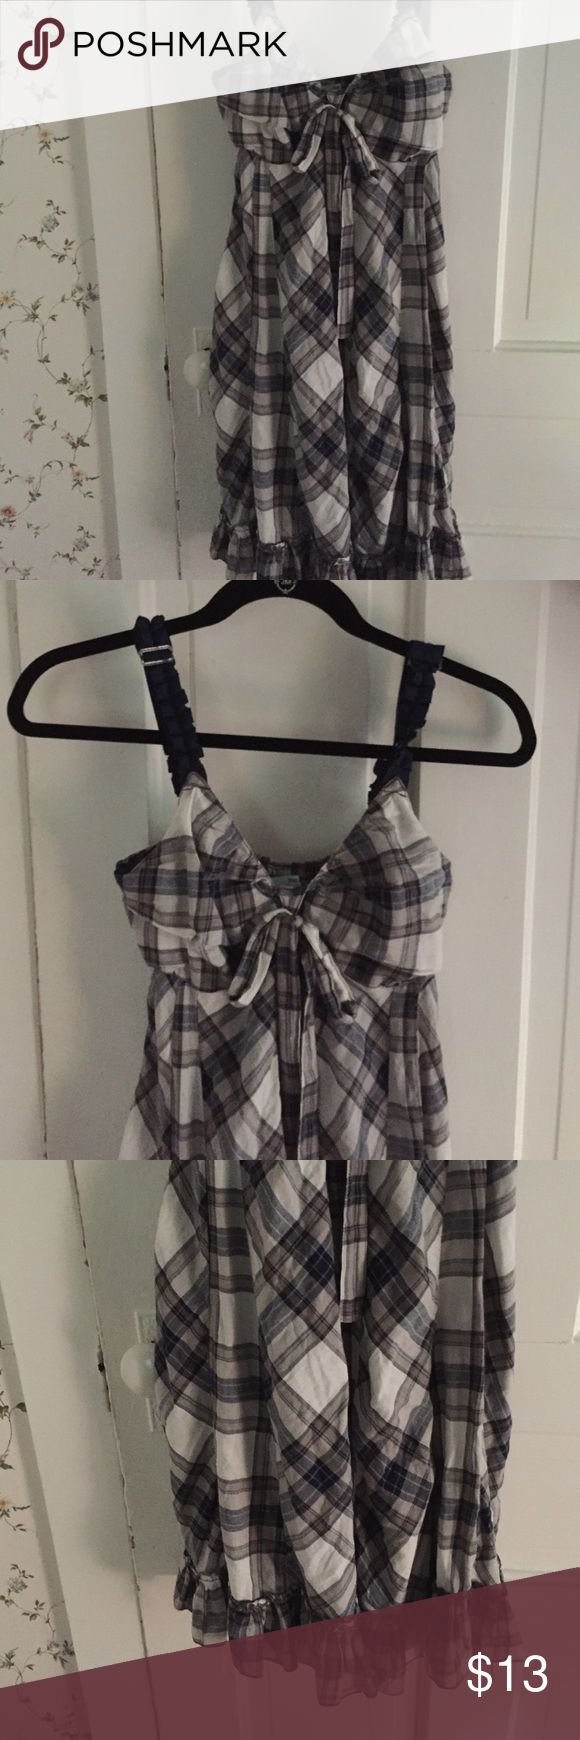 Maurice's SunDress Maurice's Sundress Size Small. The dress is in great condition no rips no stains. It's a great dress for BBQs or any summer nights. It's really cute. Maurices Dresses